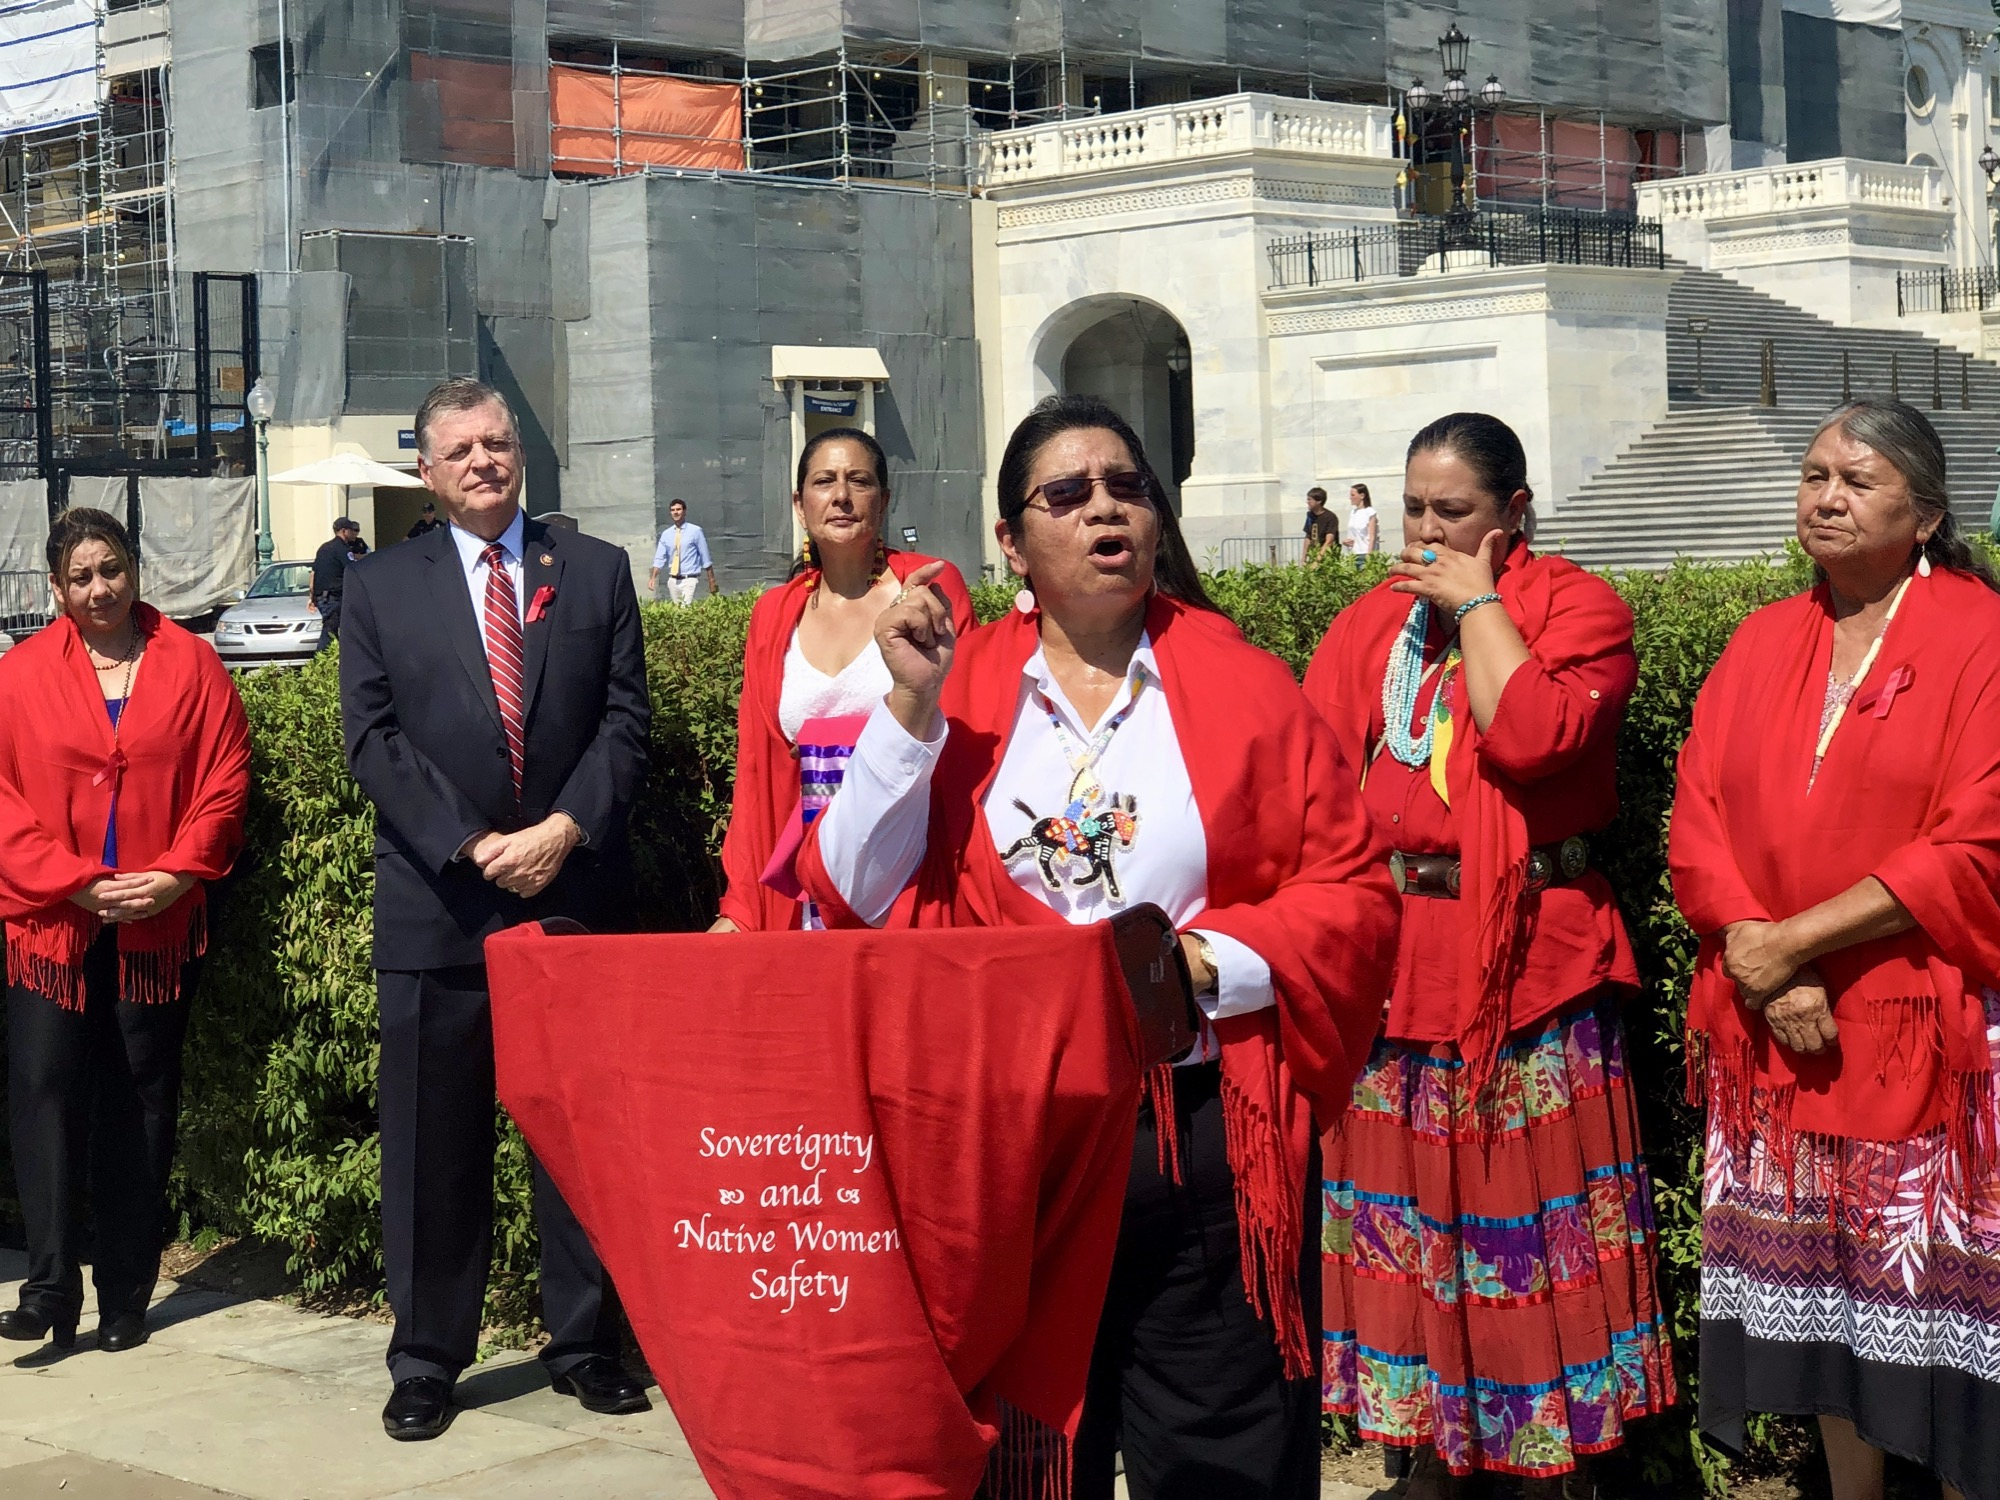 'Nobody deserves this kind of treatment': Native women speak out against Oglala Sioux leader